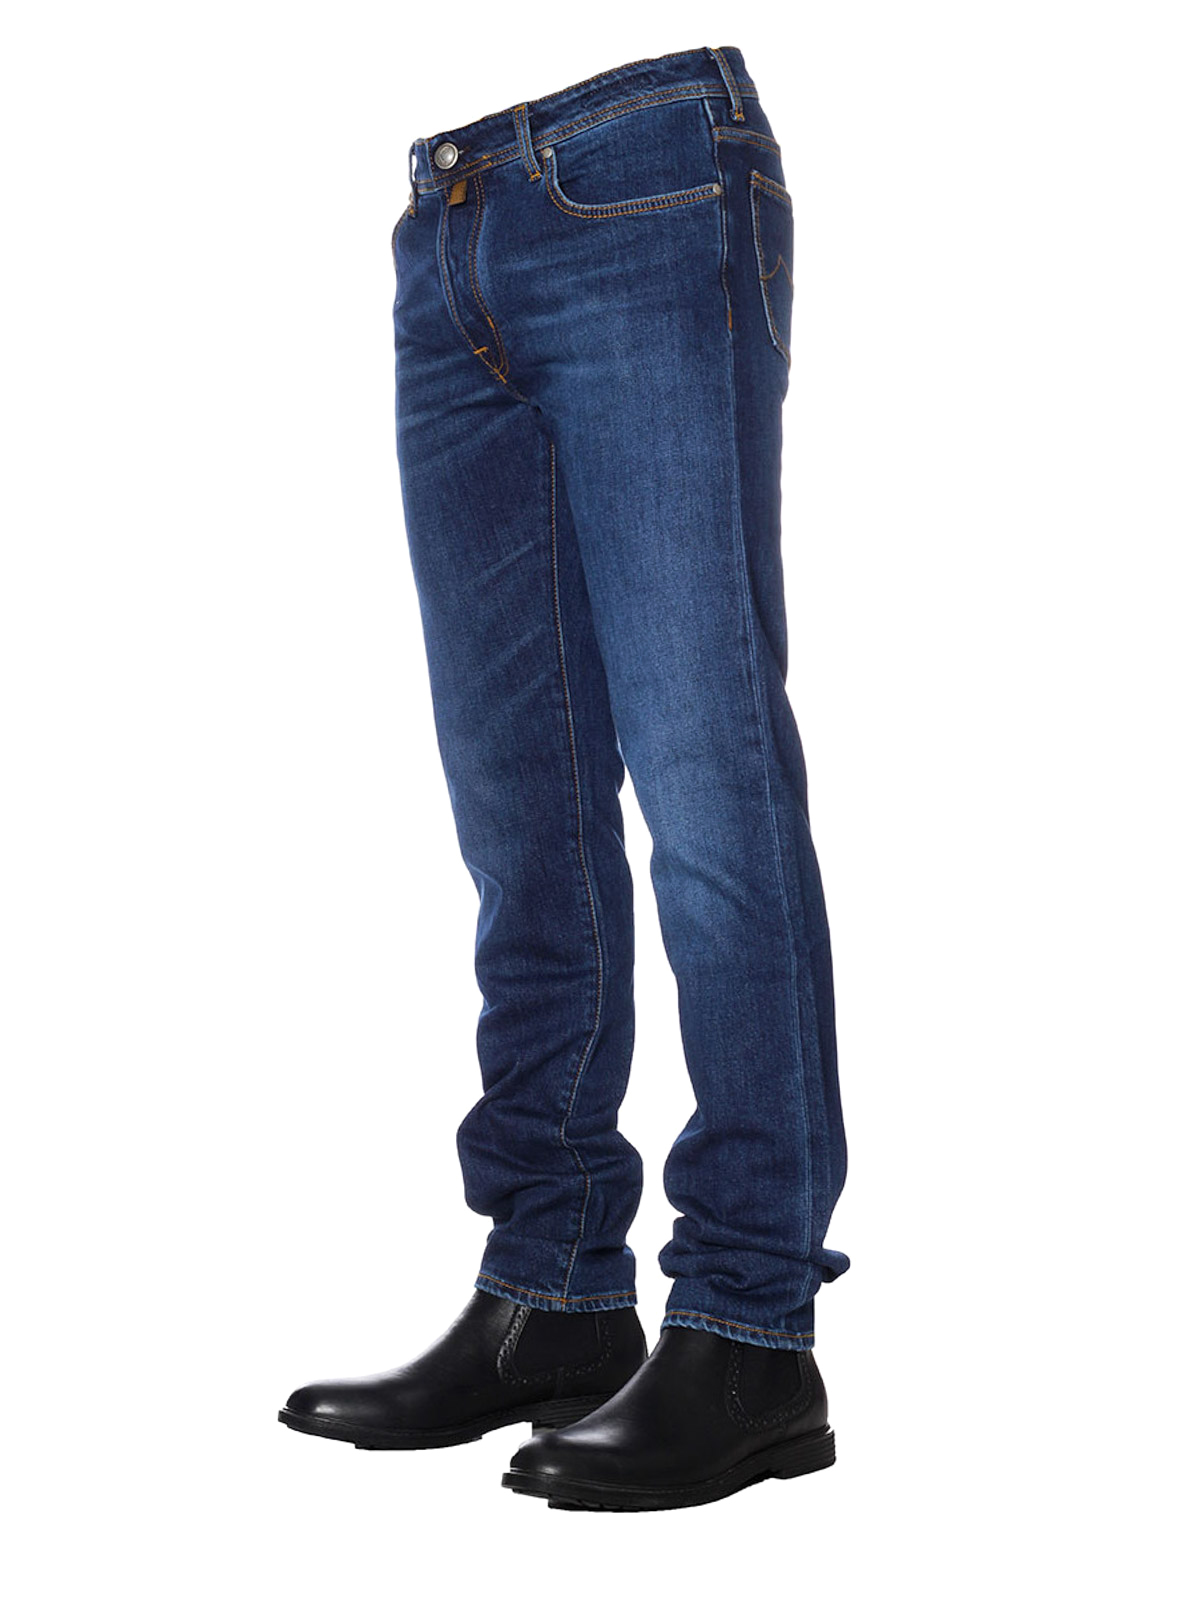 style 688 comf blue cotton jeans by jacob cohen straight leg jeans ikrix. Black Bedroom Furniture Sets. Home Design Ideas